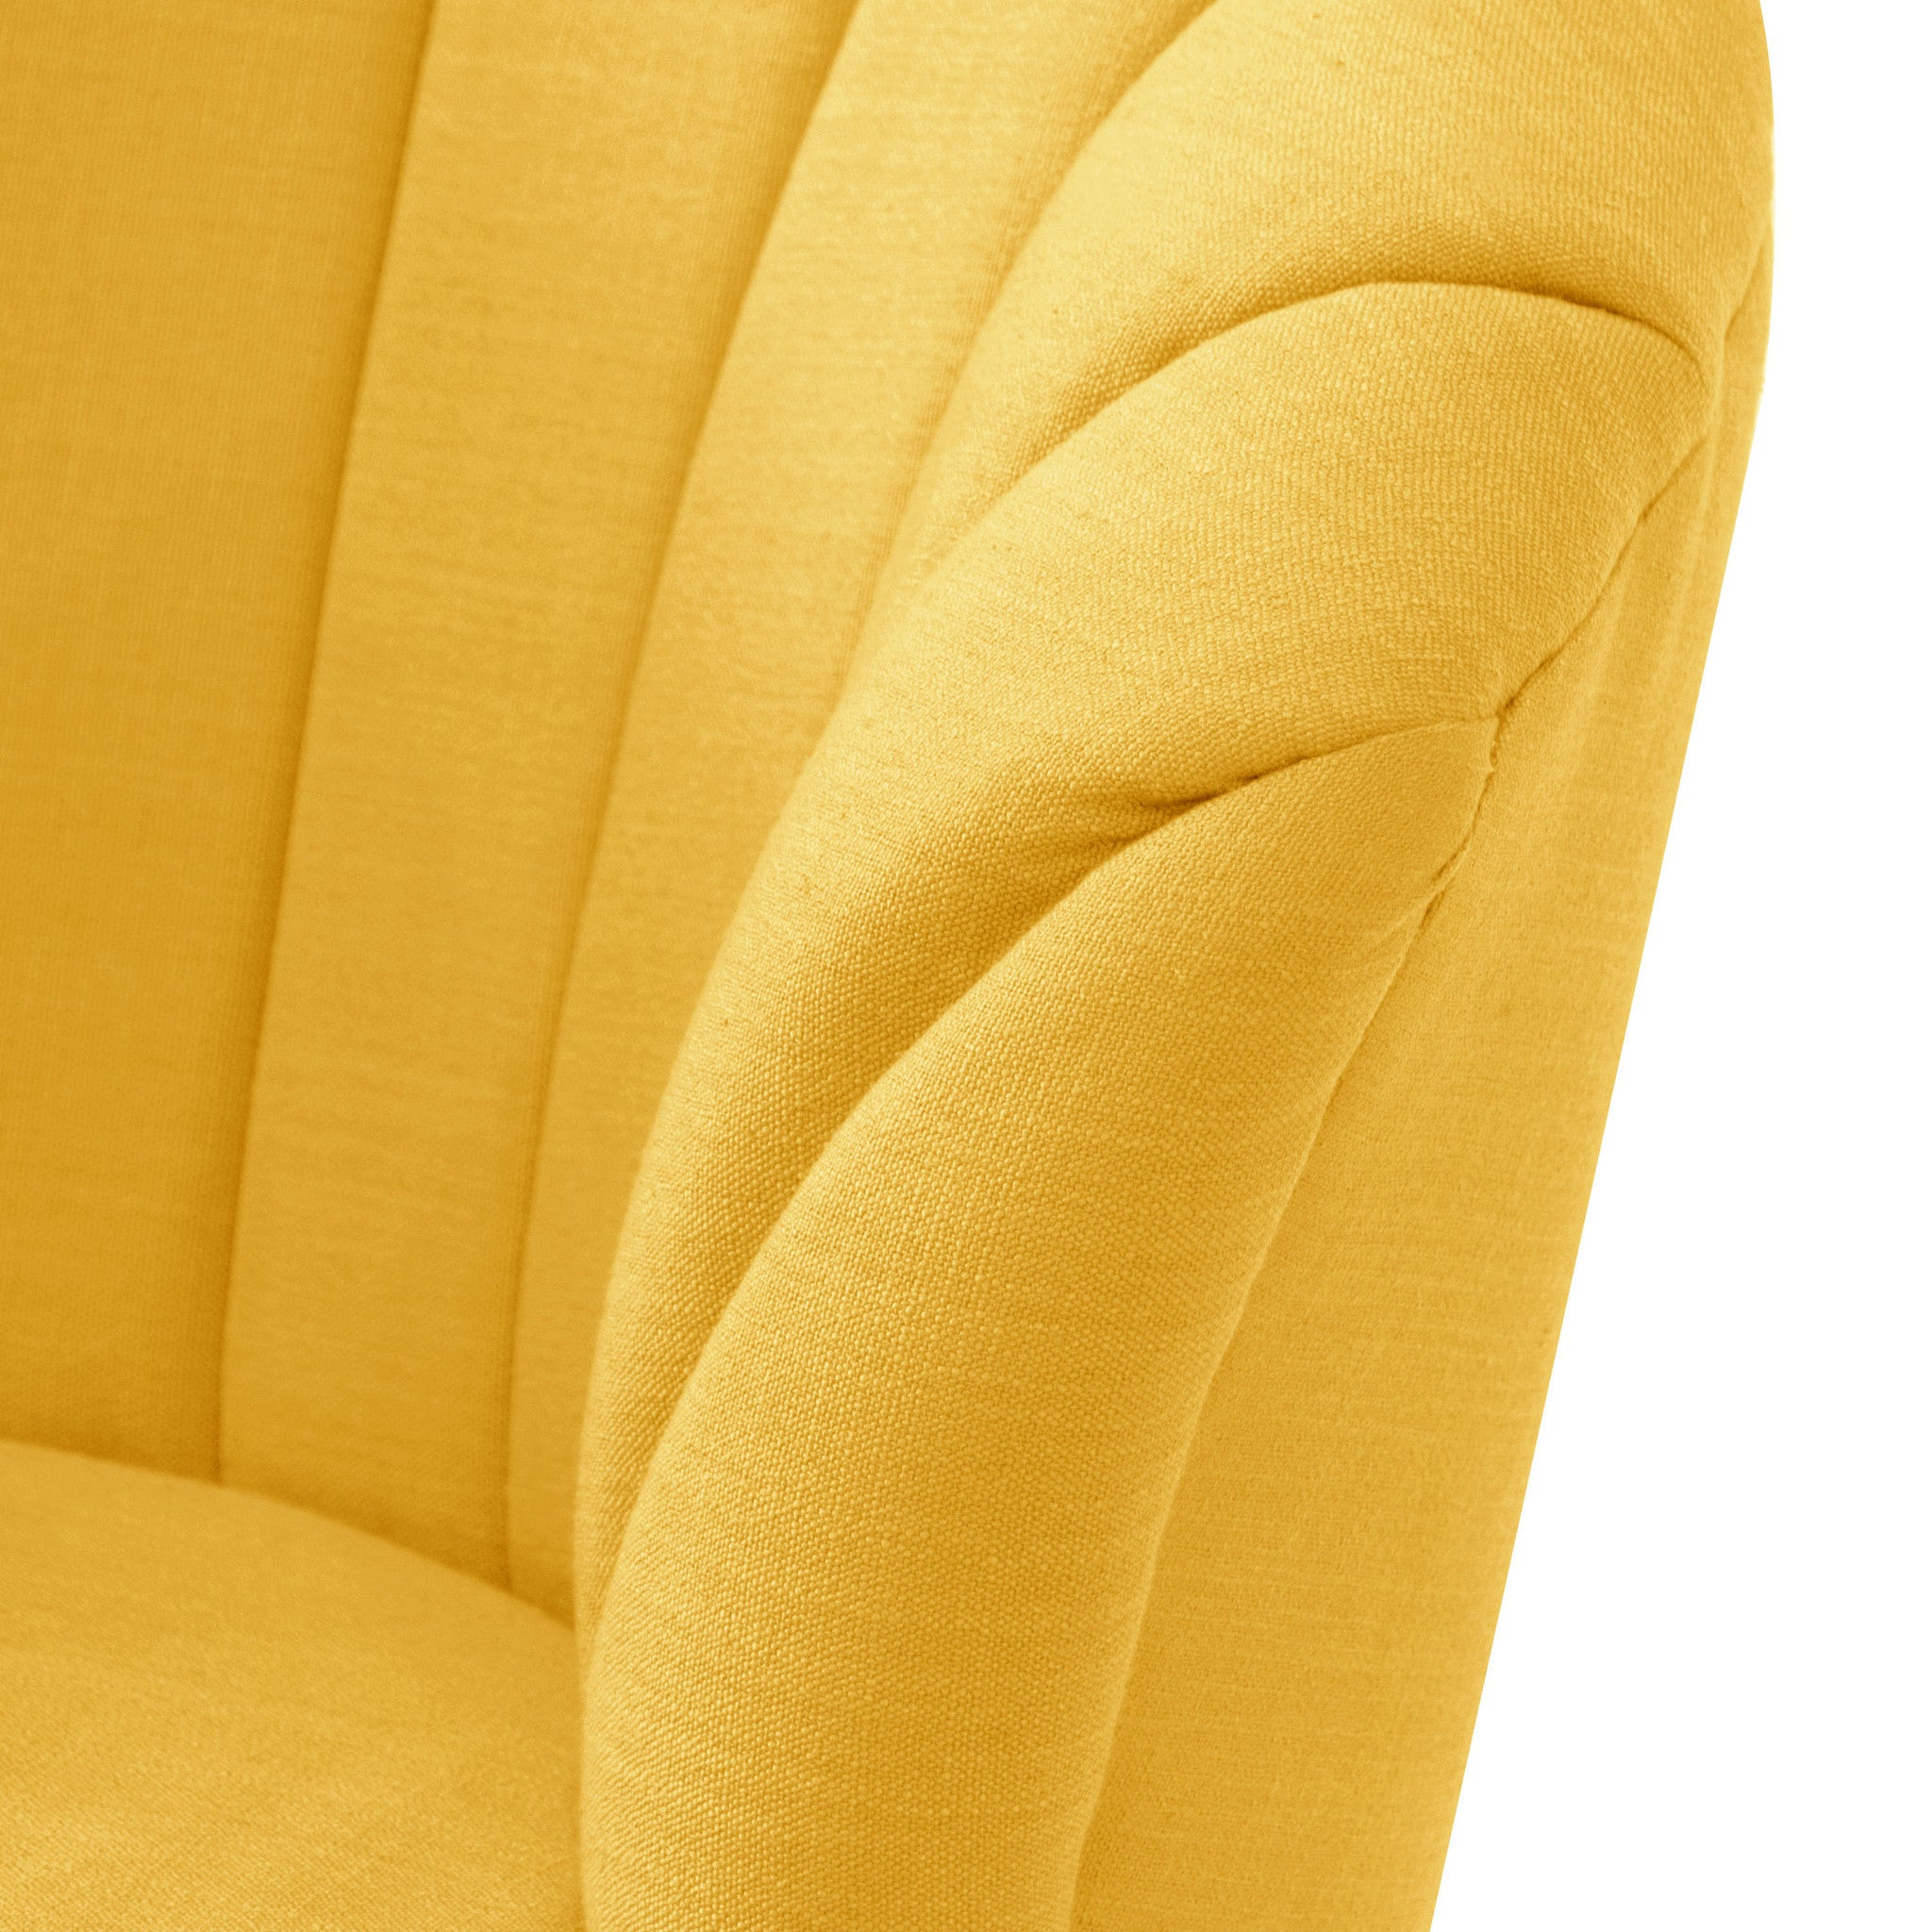 ... Angelo:HOME Channel Seam Barrel Chair In Linen French Yellow    Angelo:HOME